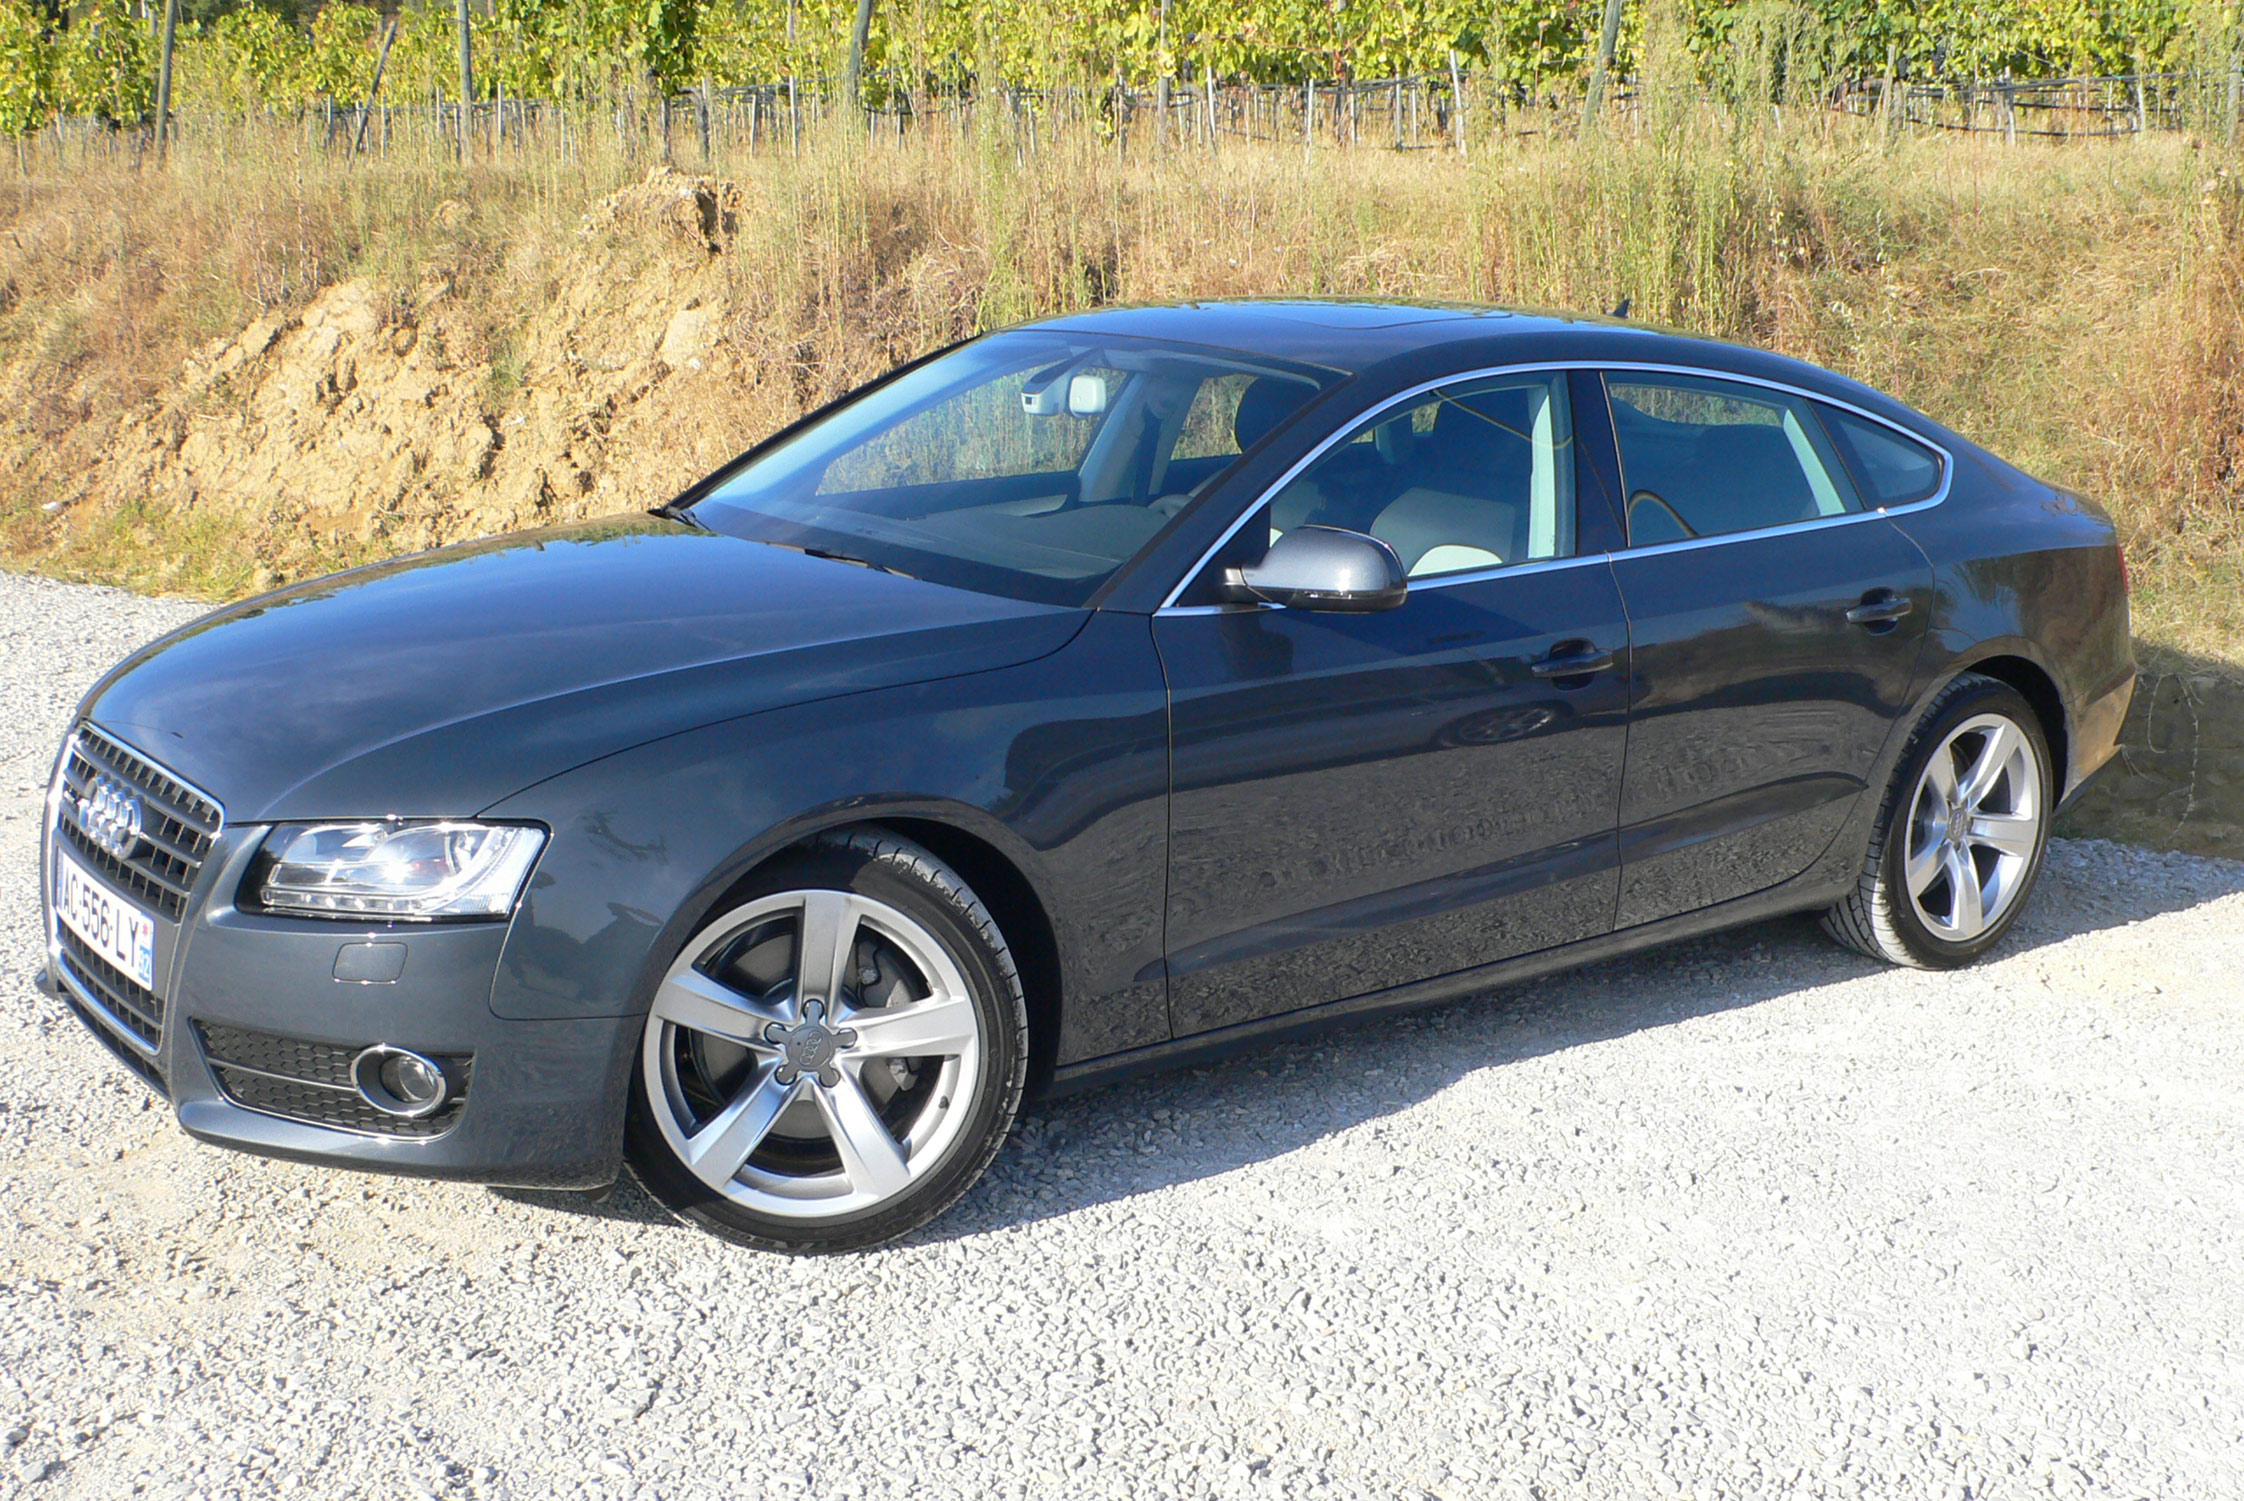 photo audi a5 sportback i 3 0 tdi v6 240 ch dpf quattro berline 2009 m diatheque. Black Bedroom Furniture Sets. Home Design Ideas